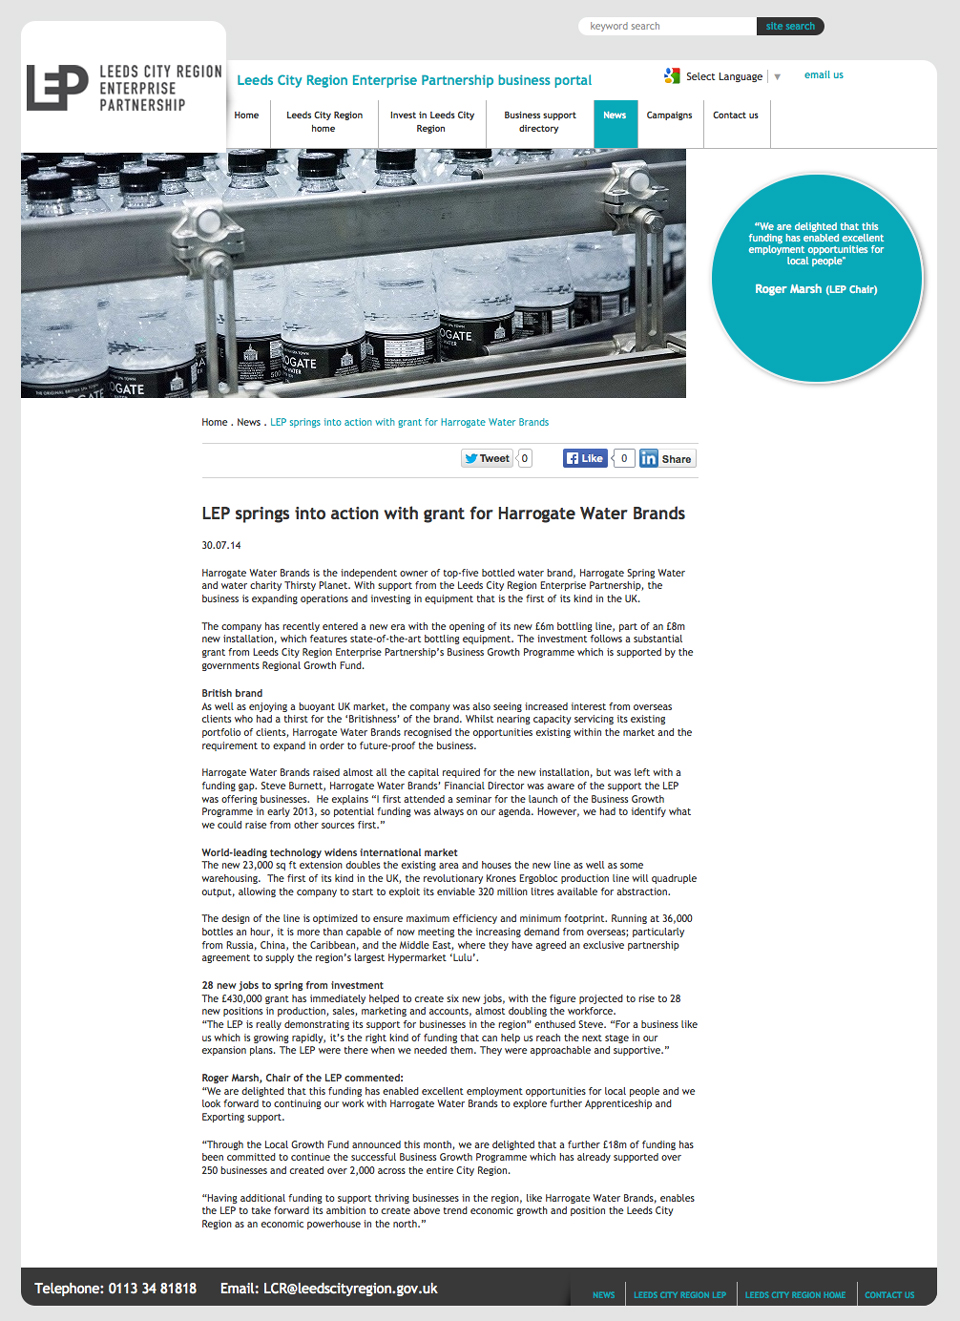 lcrep harrogate water brands case study copywriter leeds i recorded an interview steve burnett financial director then created this case study and a portfolio of shots